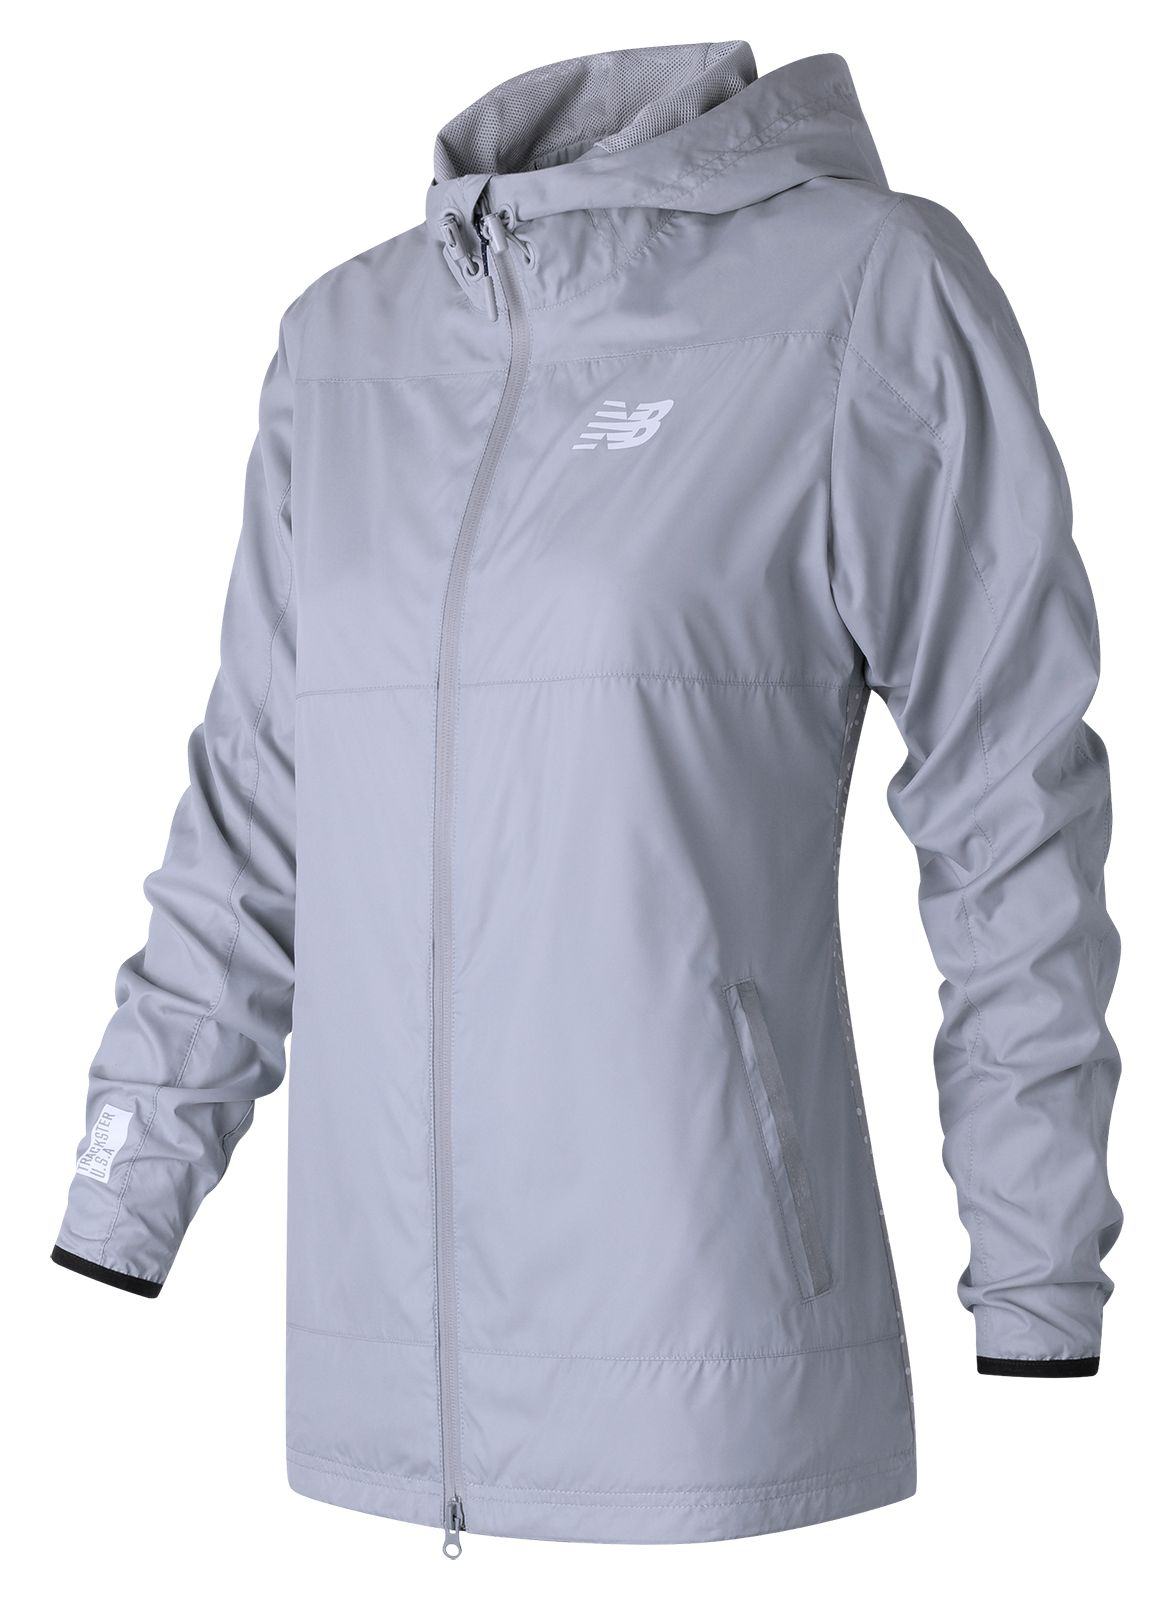 New Balance : Trackster Woven Jacket : Women's Casual : WJ71620SVM